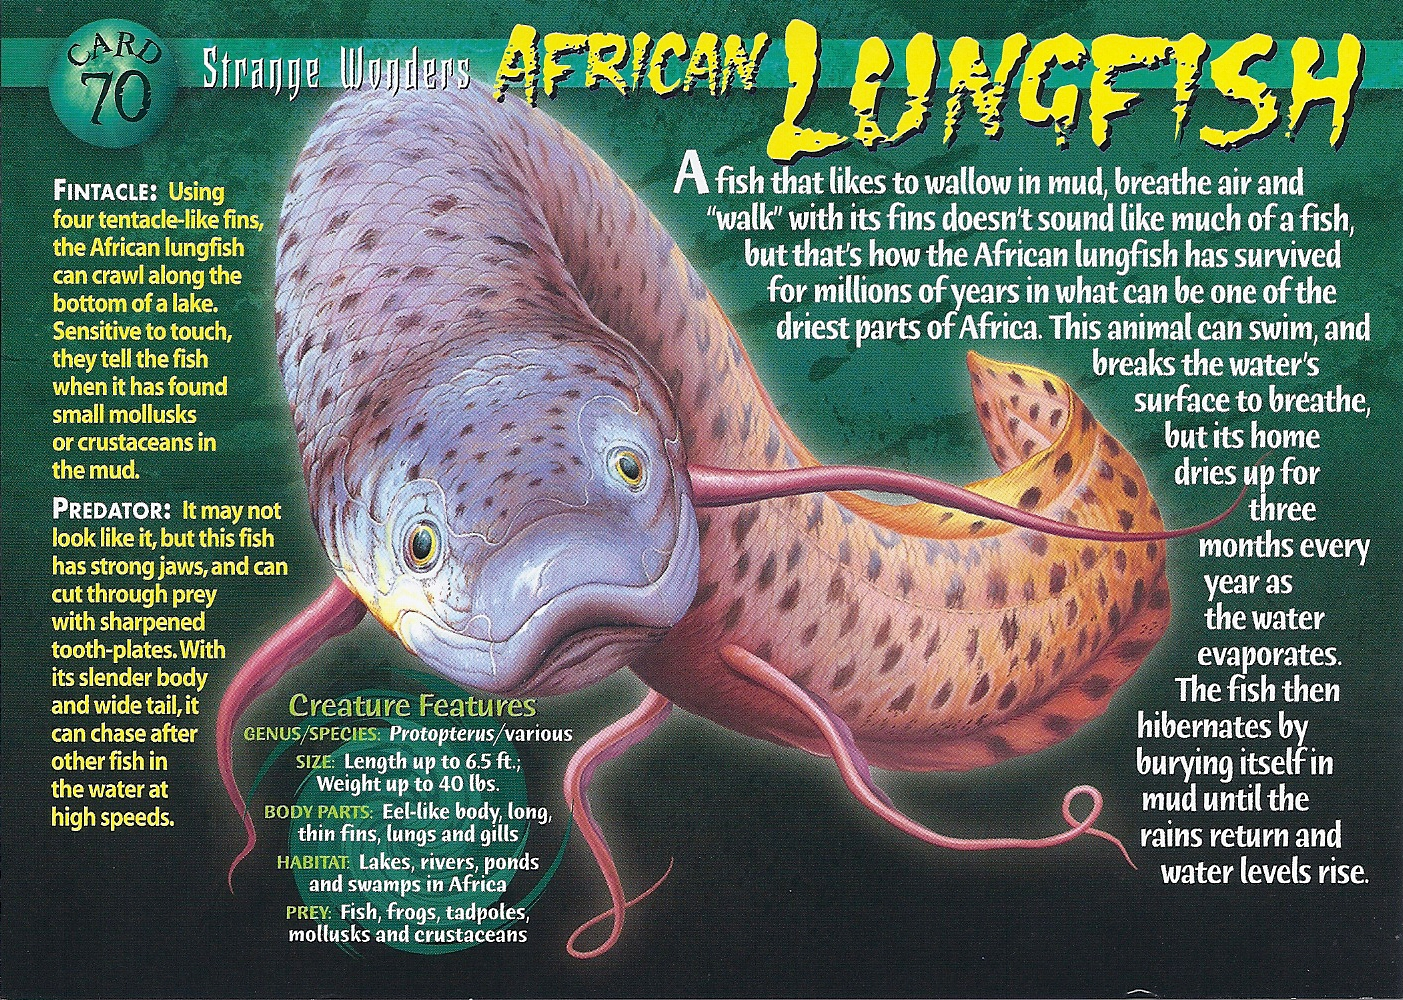 Giant African Spider African Lungfish | Wie...